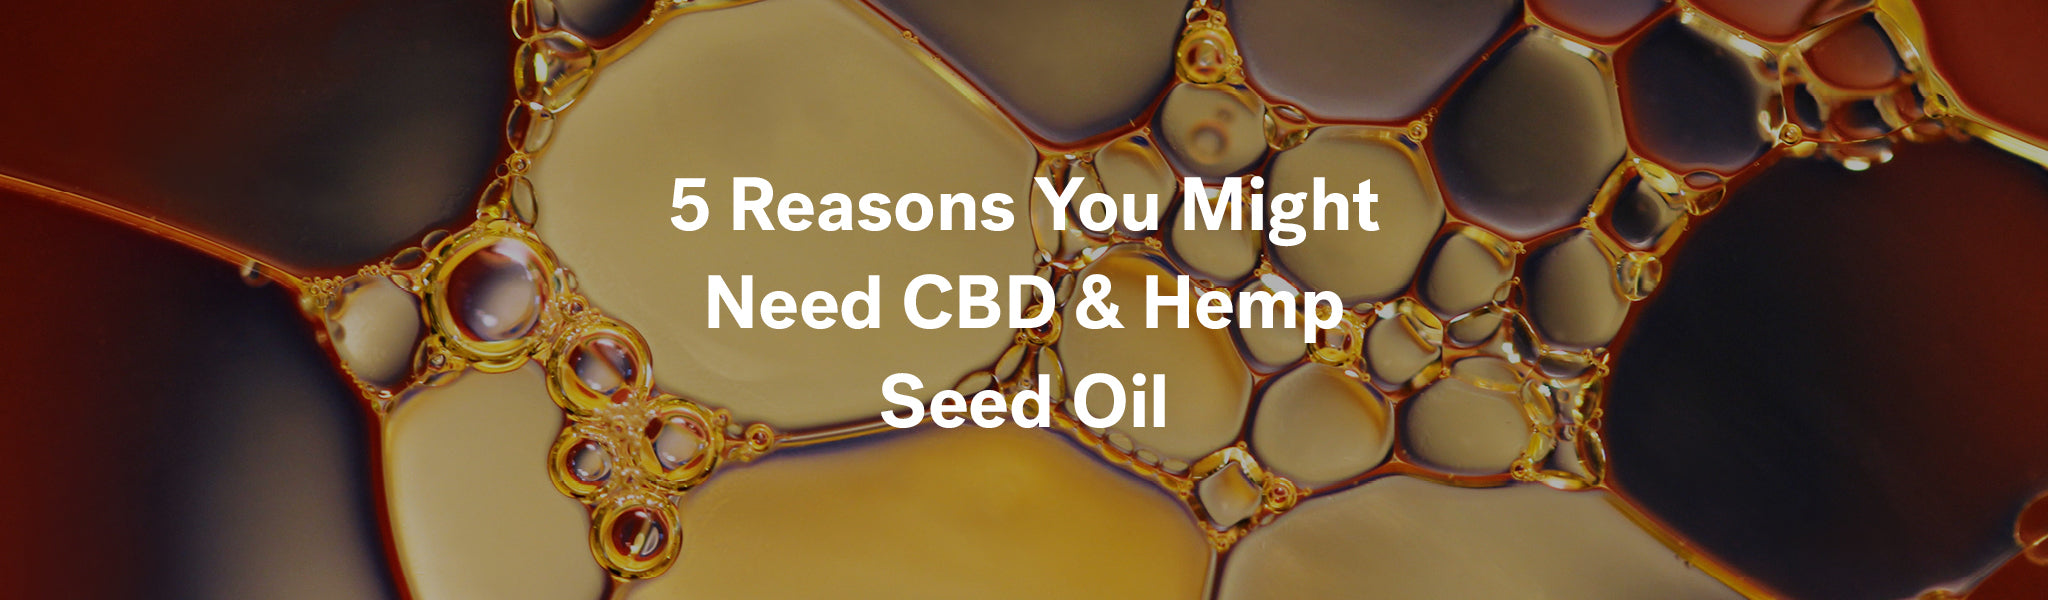 5 Reasons You Might Need CBD & Hemp Seed Oil